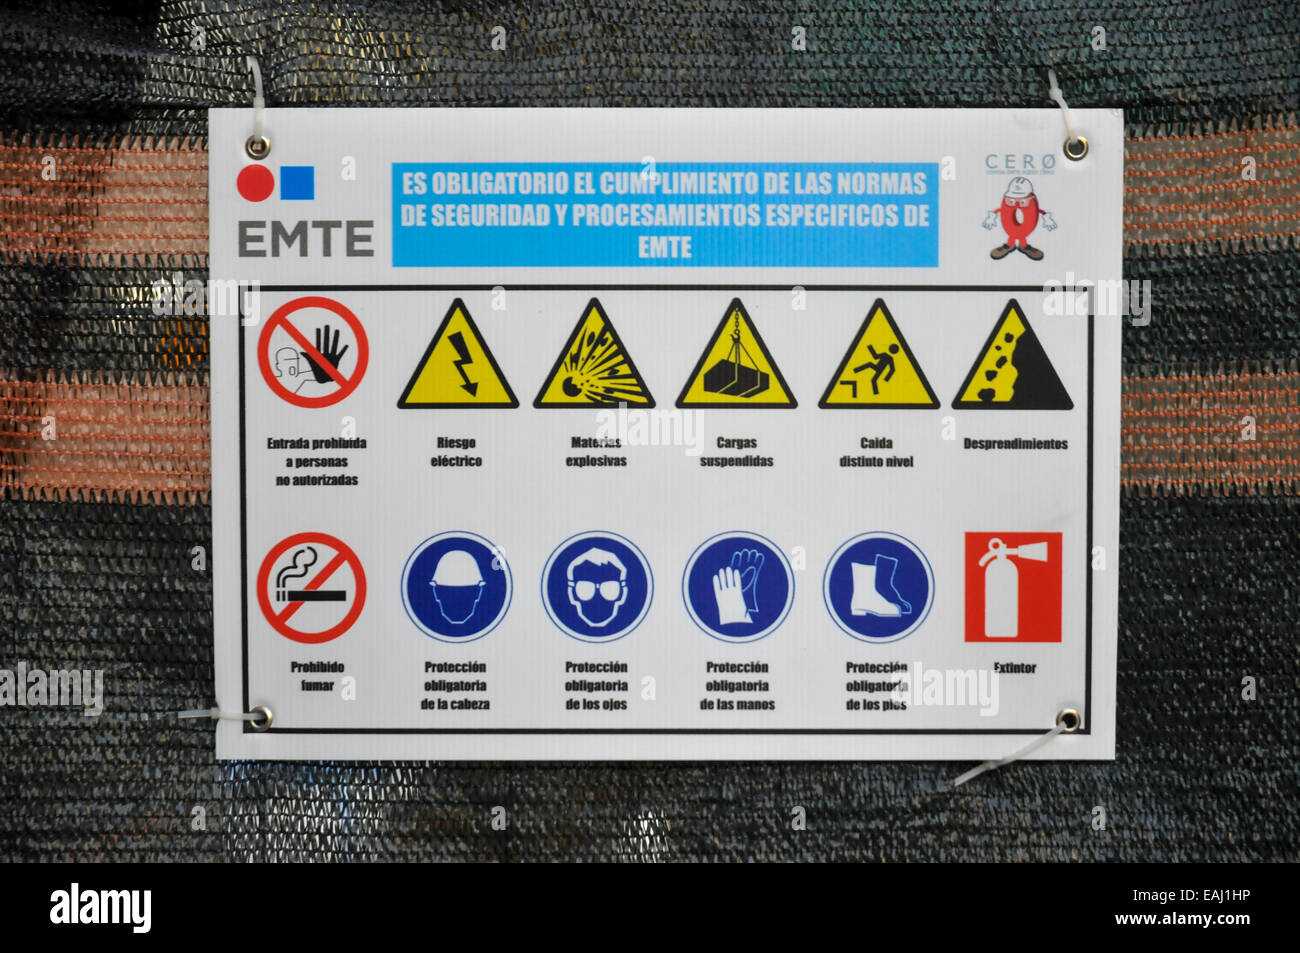 Hazardous Material warning sign. Photographed in Barcelona, Spain - Stock Image